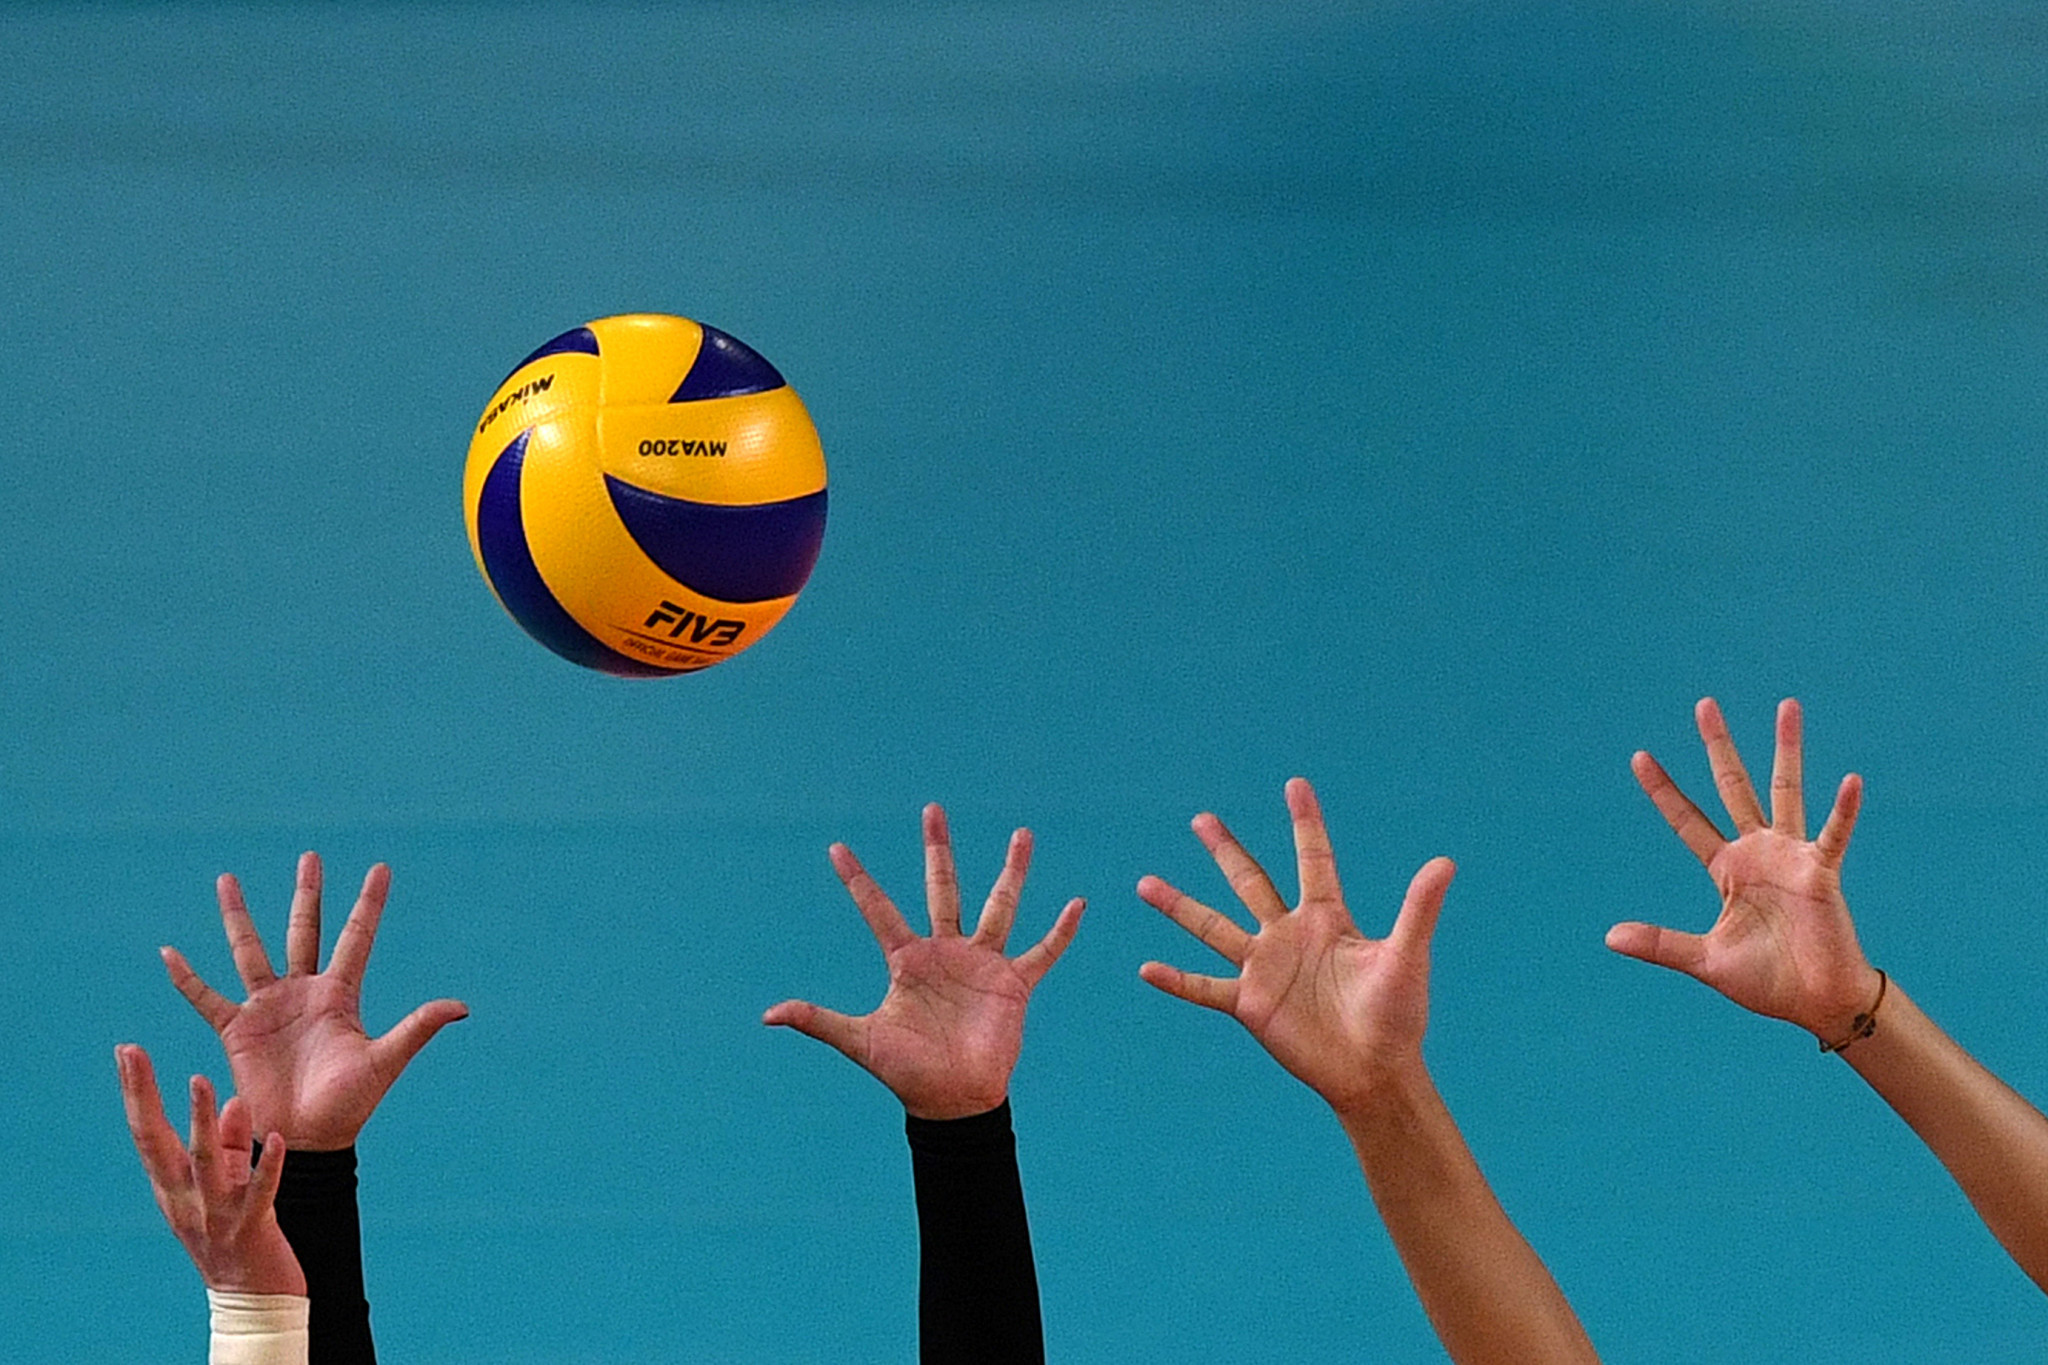 Volleyball venue for Hangzhou 2022 Asian Games declared ready